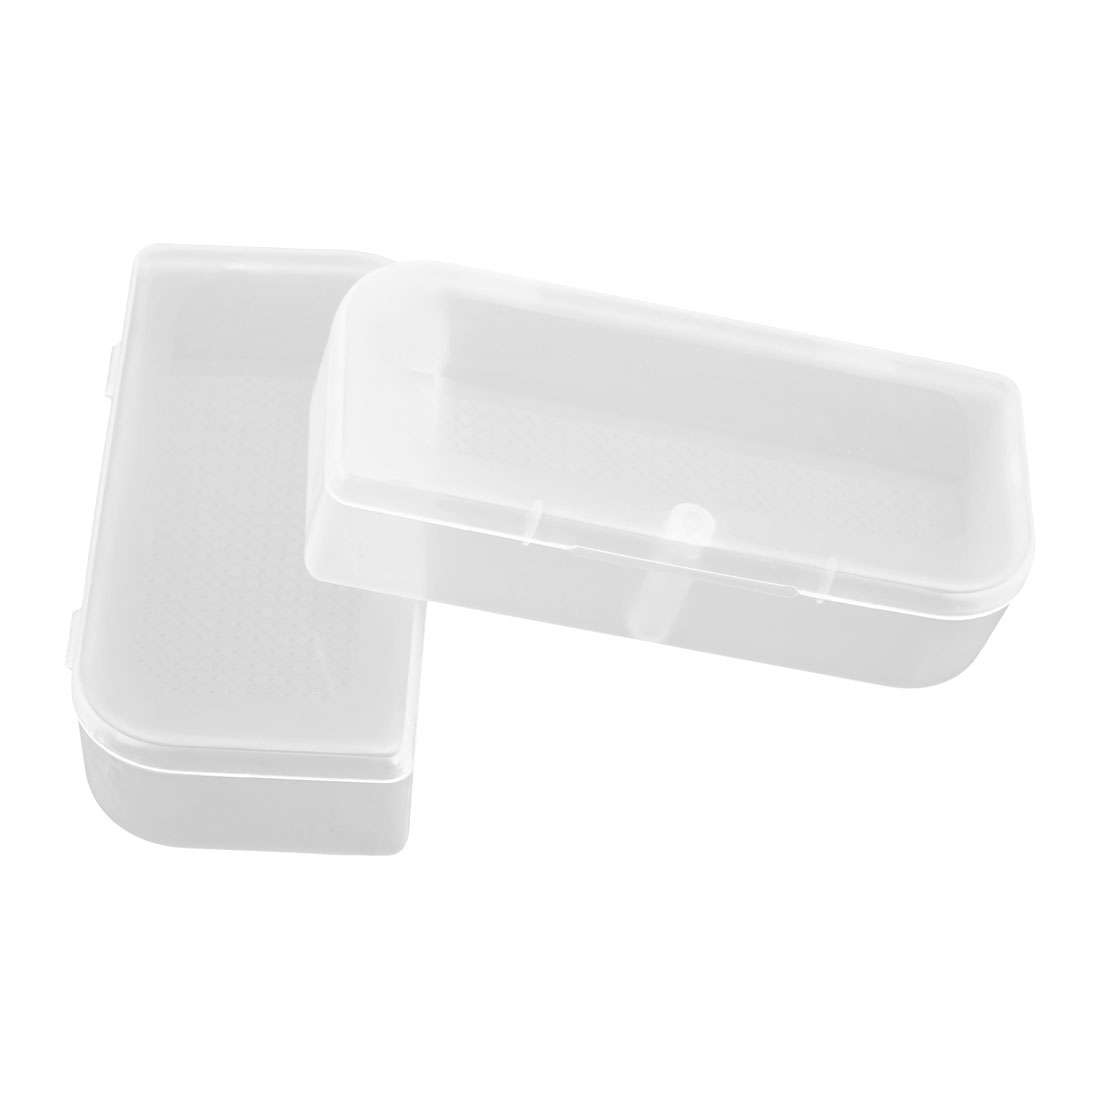 Plastic Earphone Storage Case Box Holder Container Clear 2 PCS